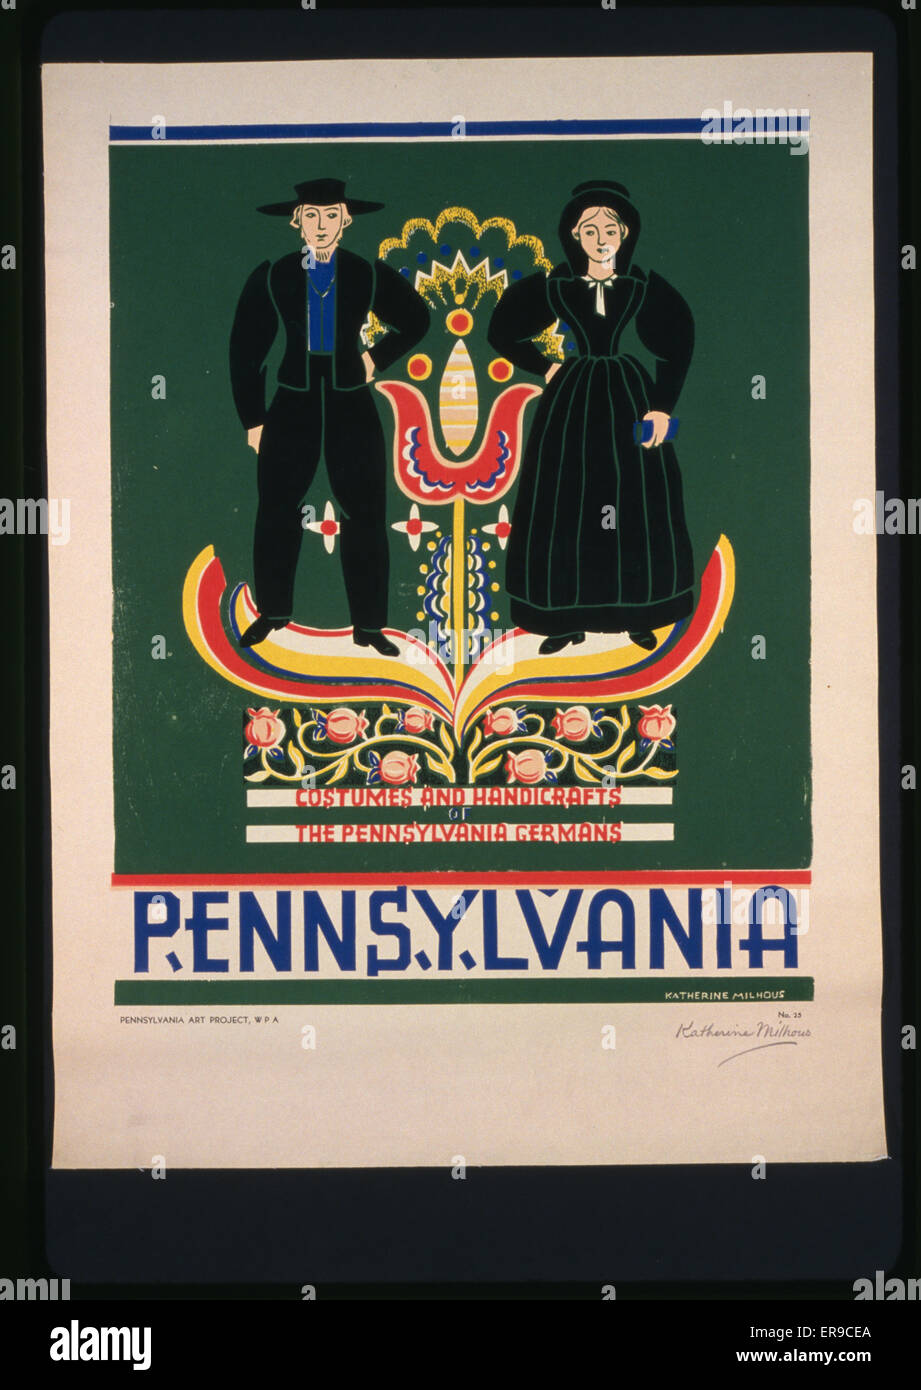 Pennsylvania Costumes and handicrafts, the Pennsylvania Germans . Poster promoting Lancaster County, Pennsylvania, - Stock Image